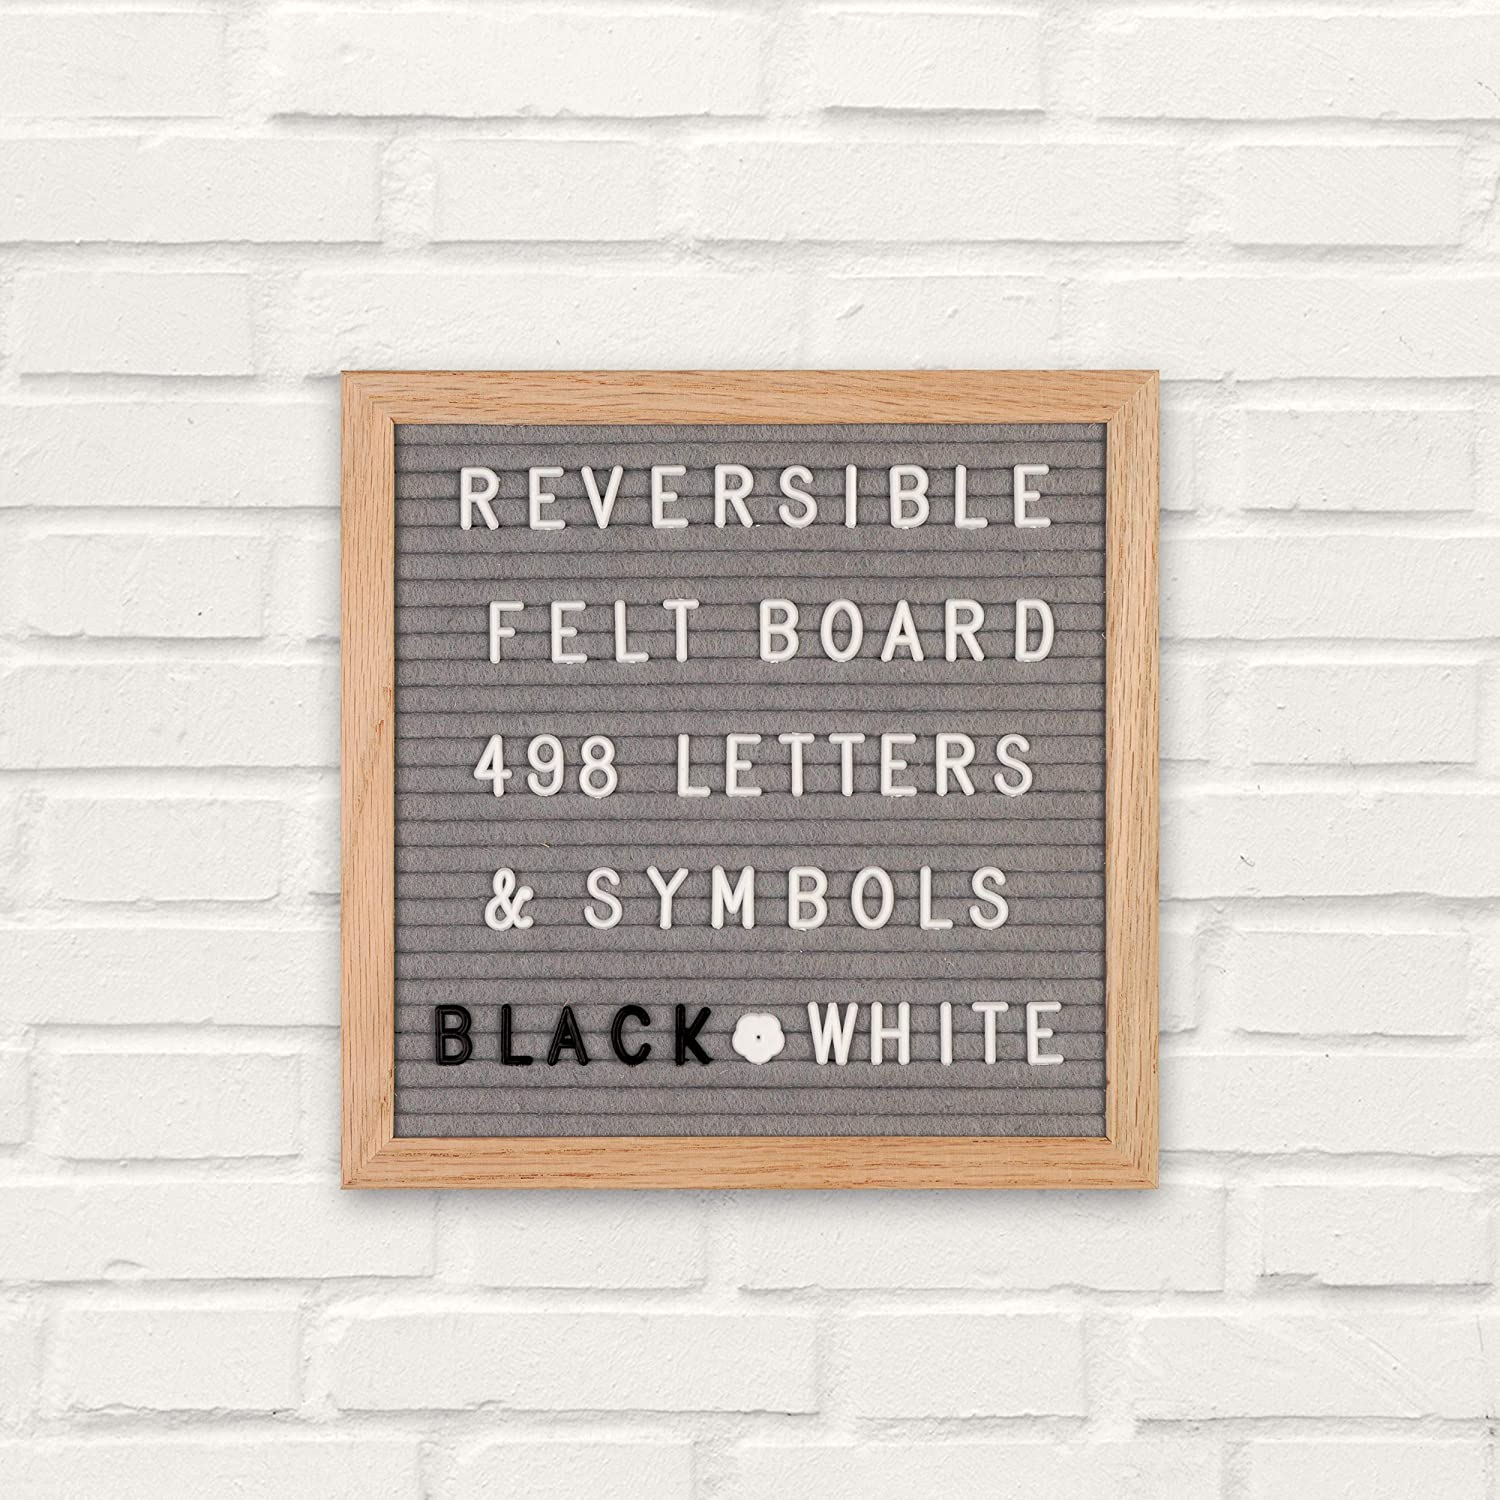 """Emoji And Symbols Premium Oak Wood Felt Letter Board Double Sided 10/""""/×10/"""" Grey// Black Great Gift Idea 2 Free Cotton Bags Complete Package Numbers 498 Black And White Letters Oak Stand"""